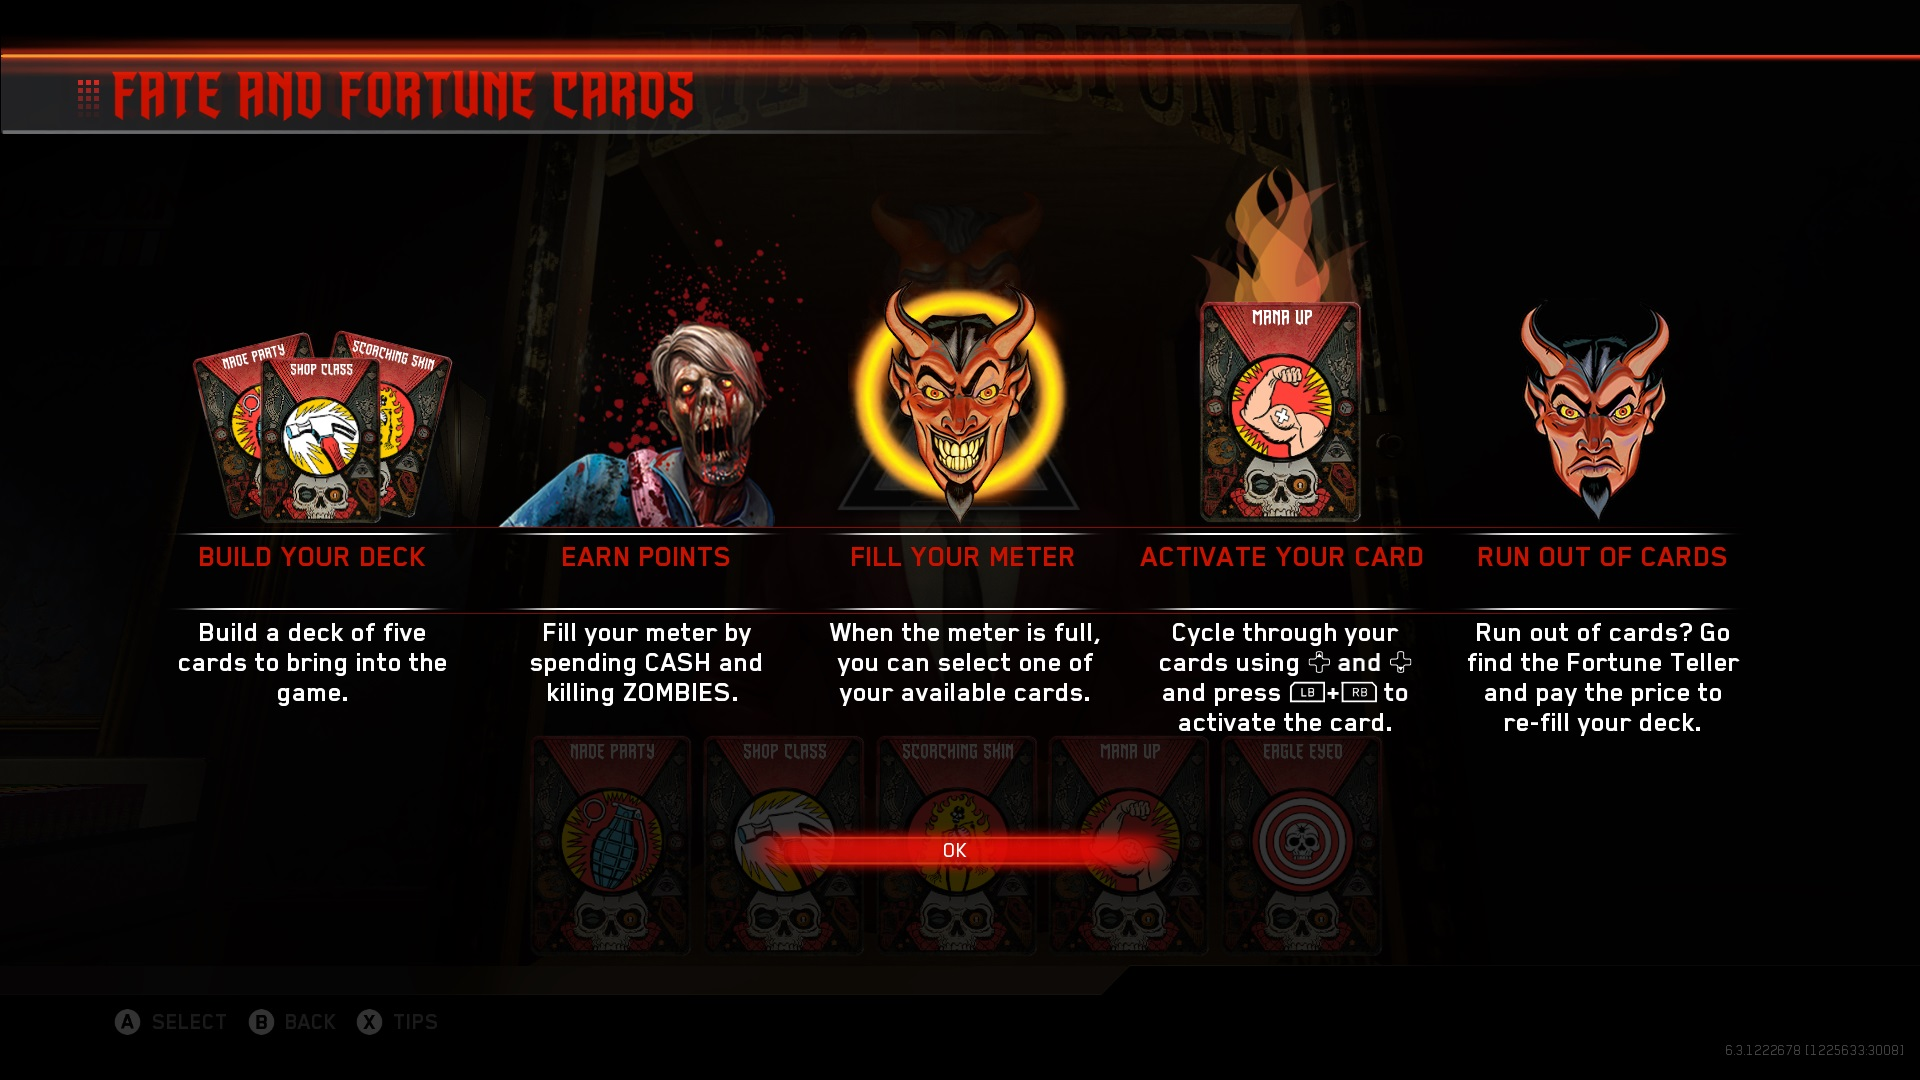 cod-iw-zombies-fate-fortune-cards